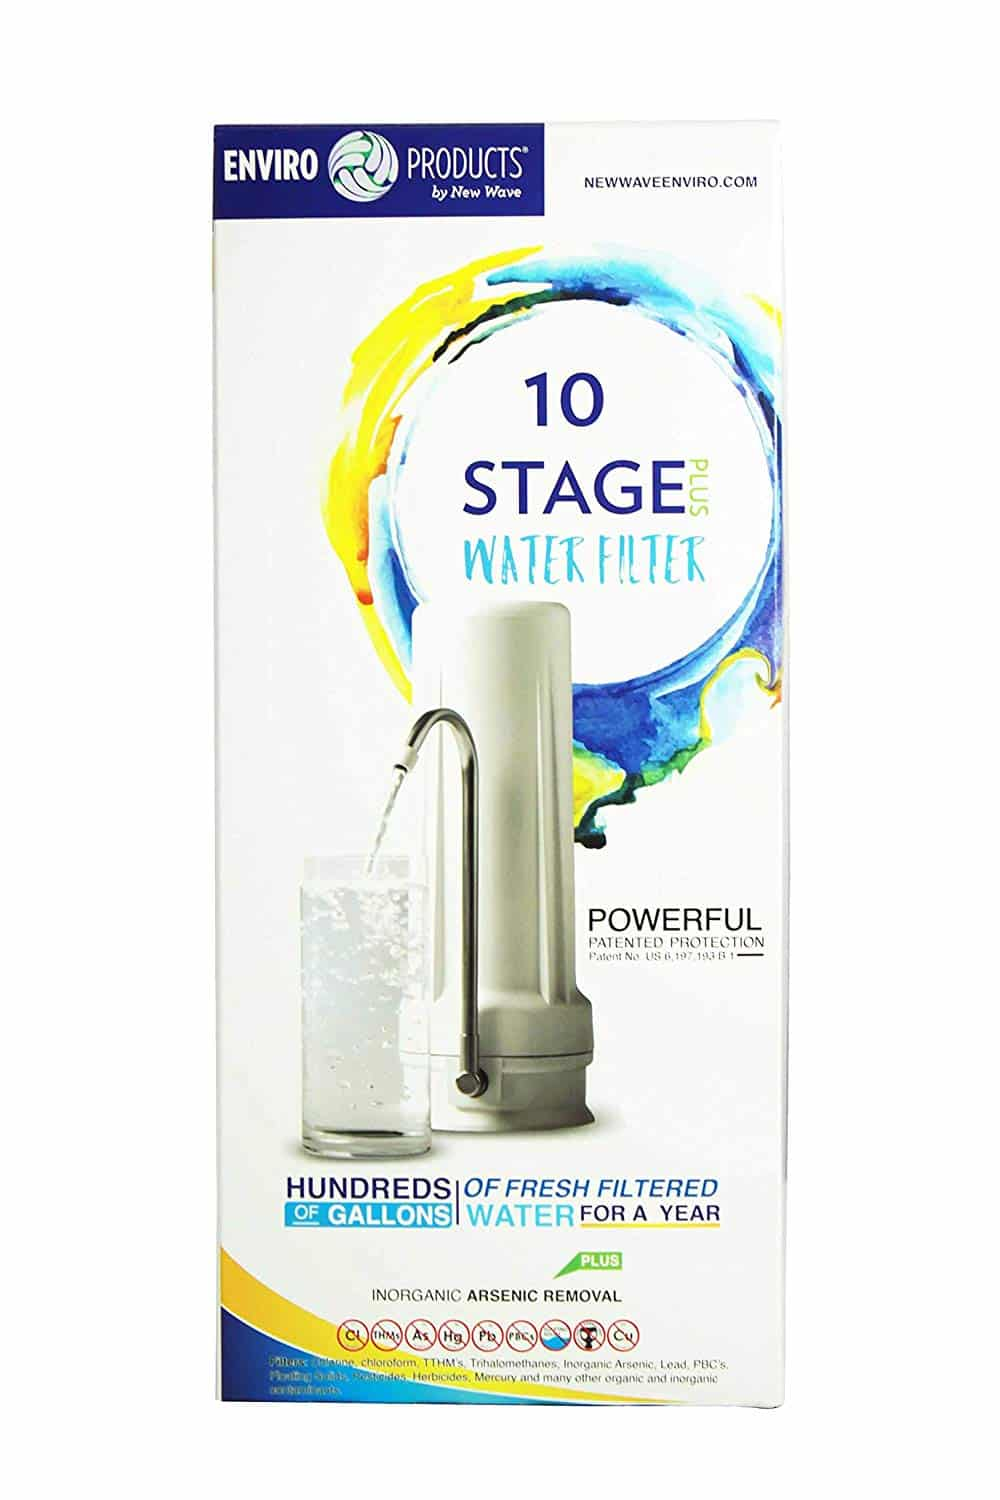 New Wave Enviro Water Filter System